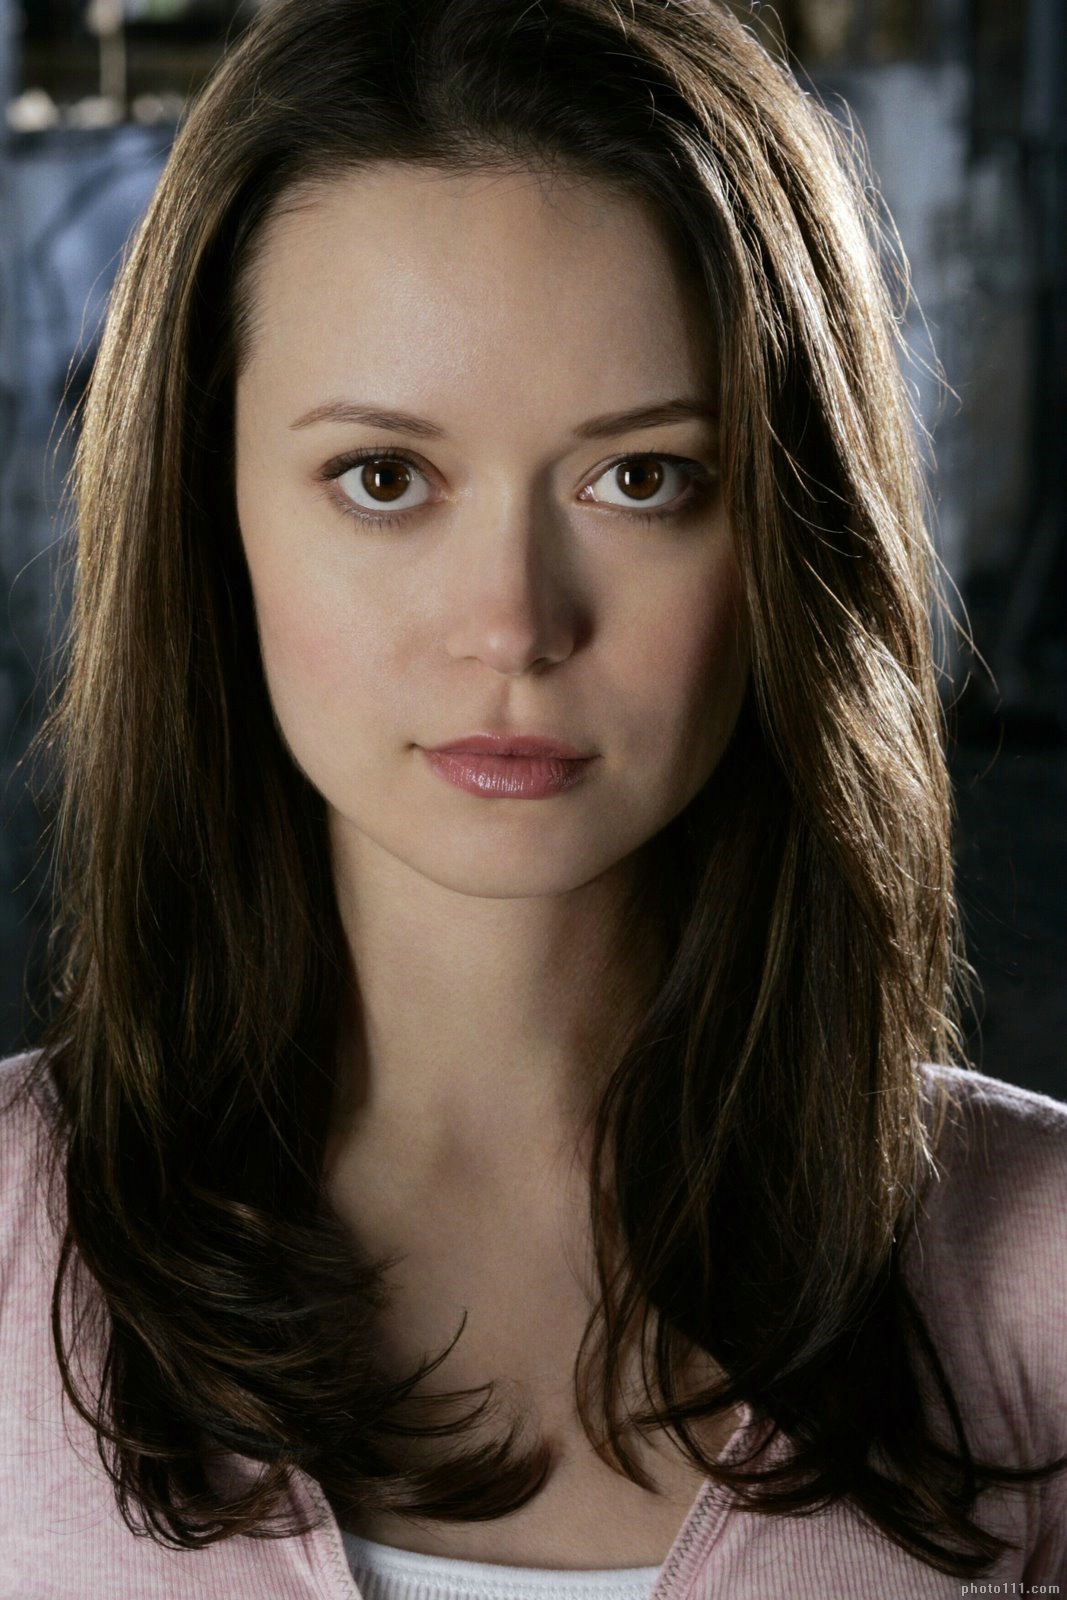 summer glau american actress style and beauty. Black Bedroom Furniture Sets. Home Design Ideas